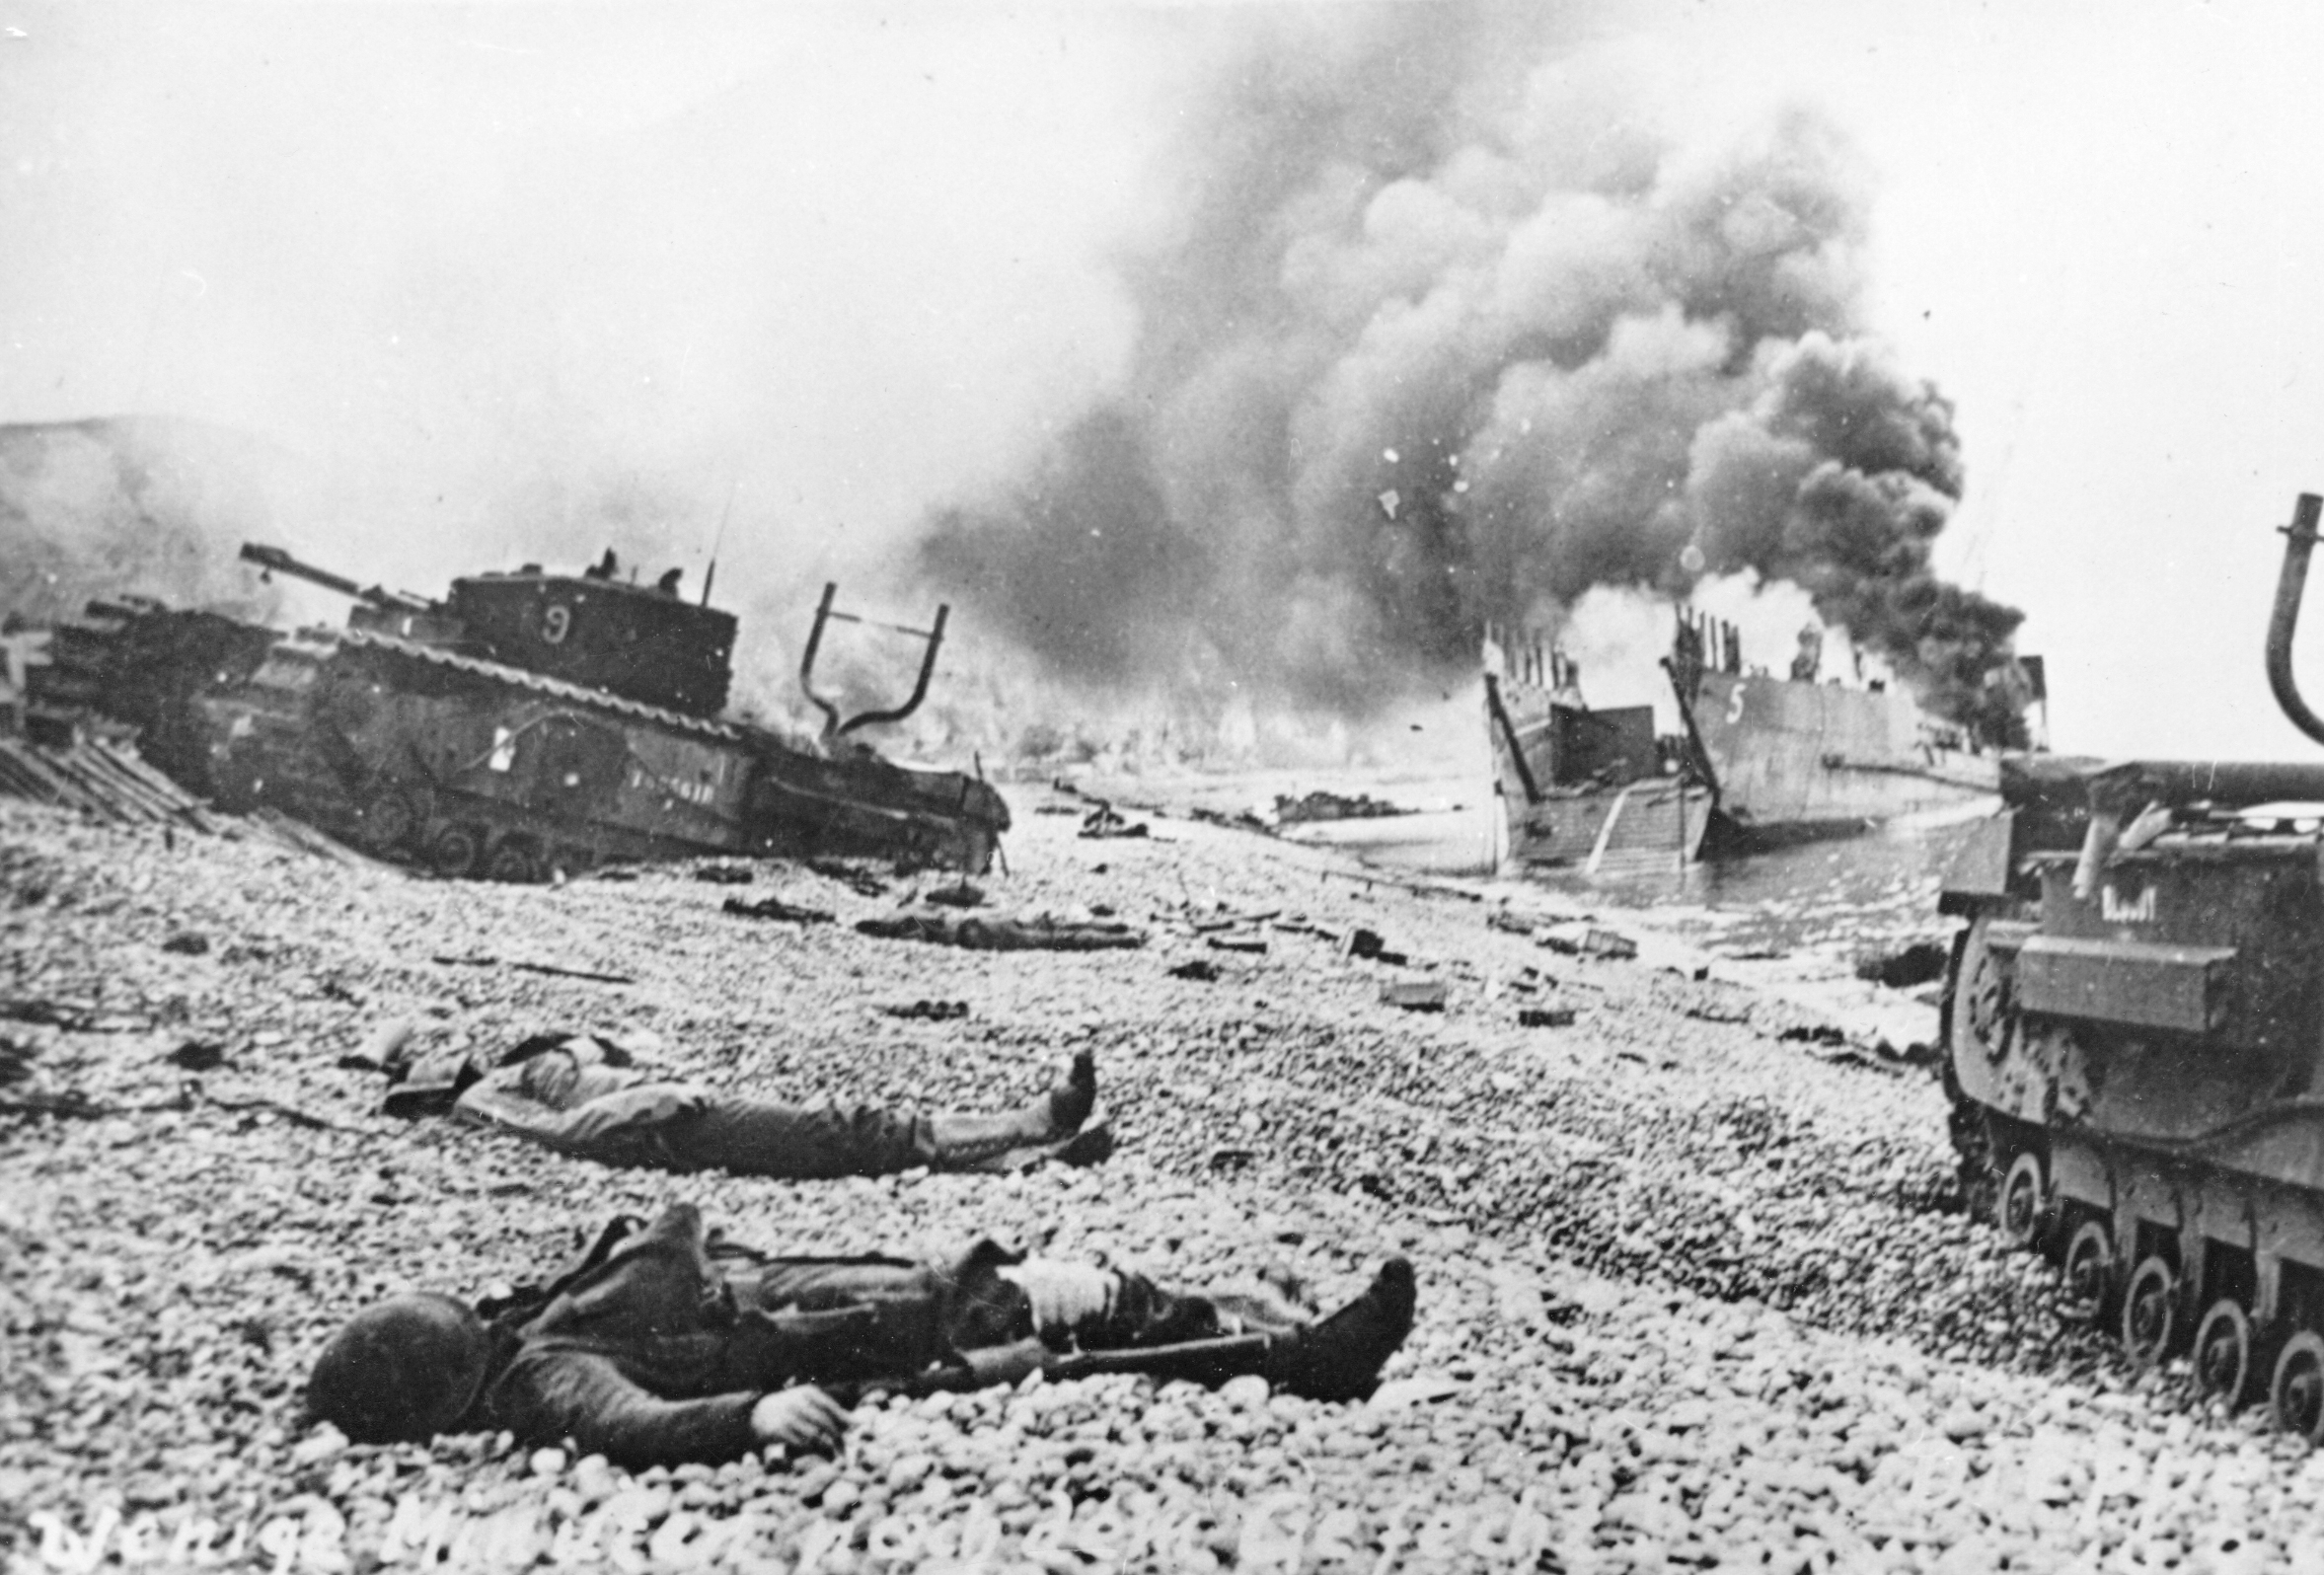 http://upload.wikimedia.org/wikipedia/commons/4/46/Bodies_of_Canadian_soldiers_-_Dieppe_Raid.jpg